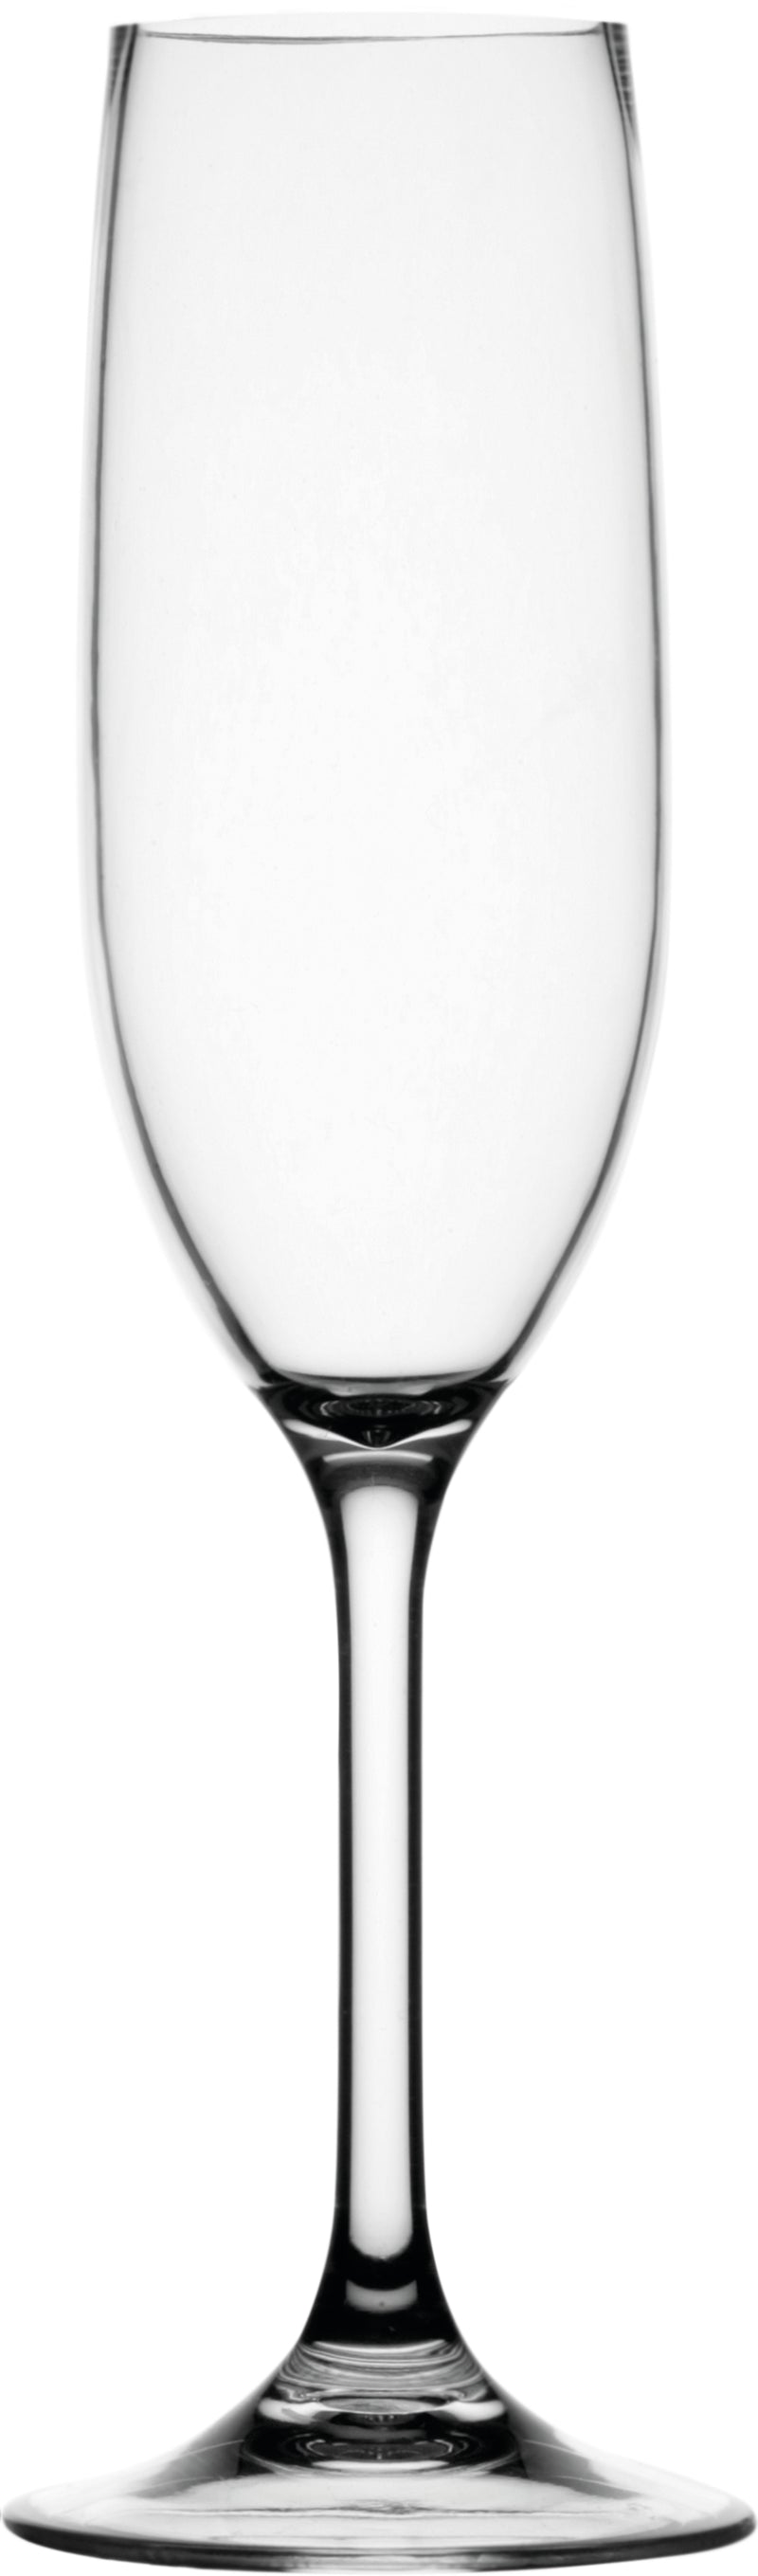 28105 - Party Champagne Glass .